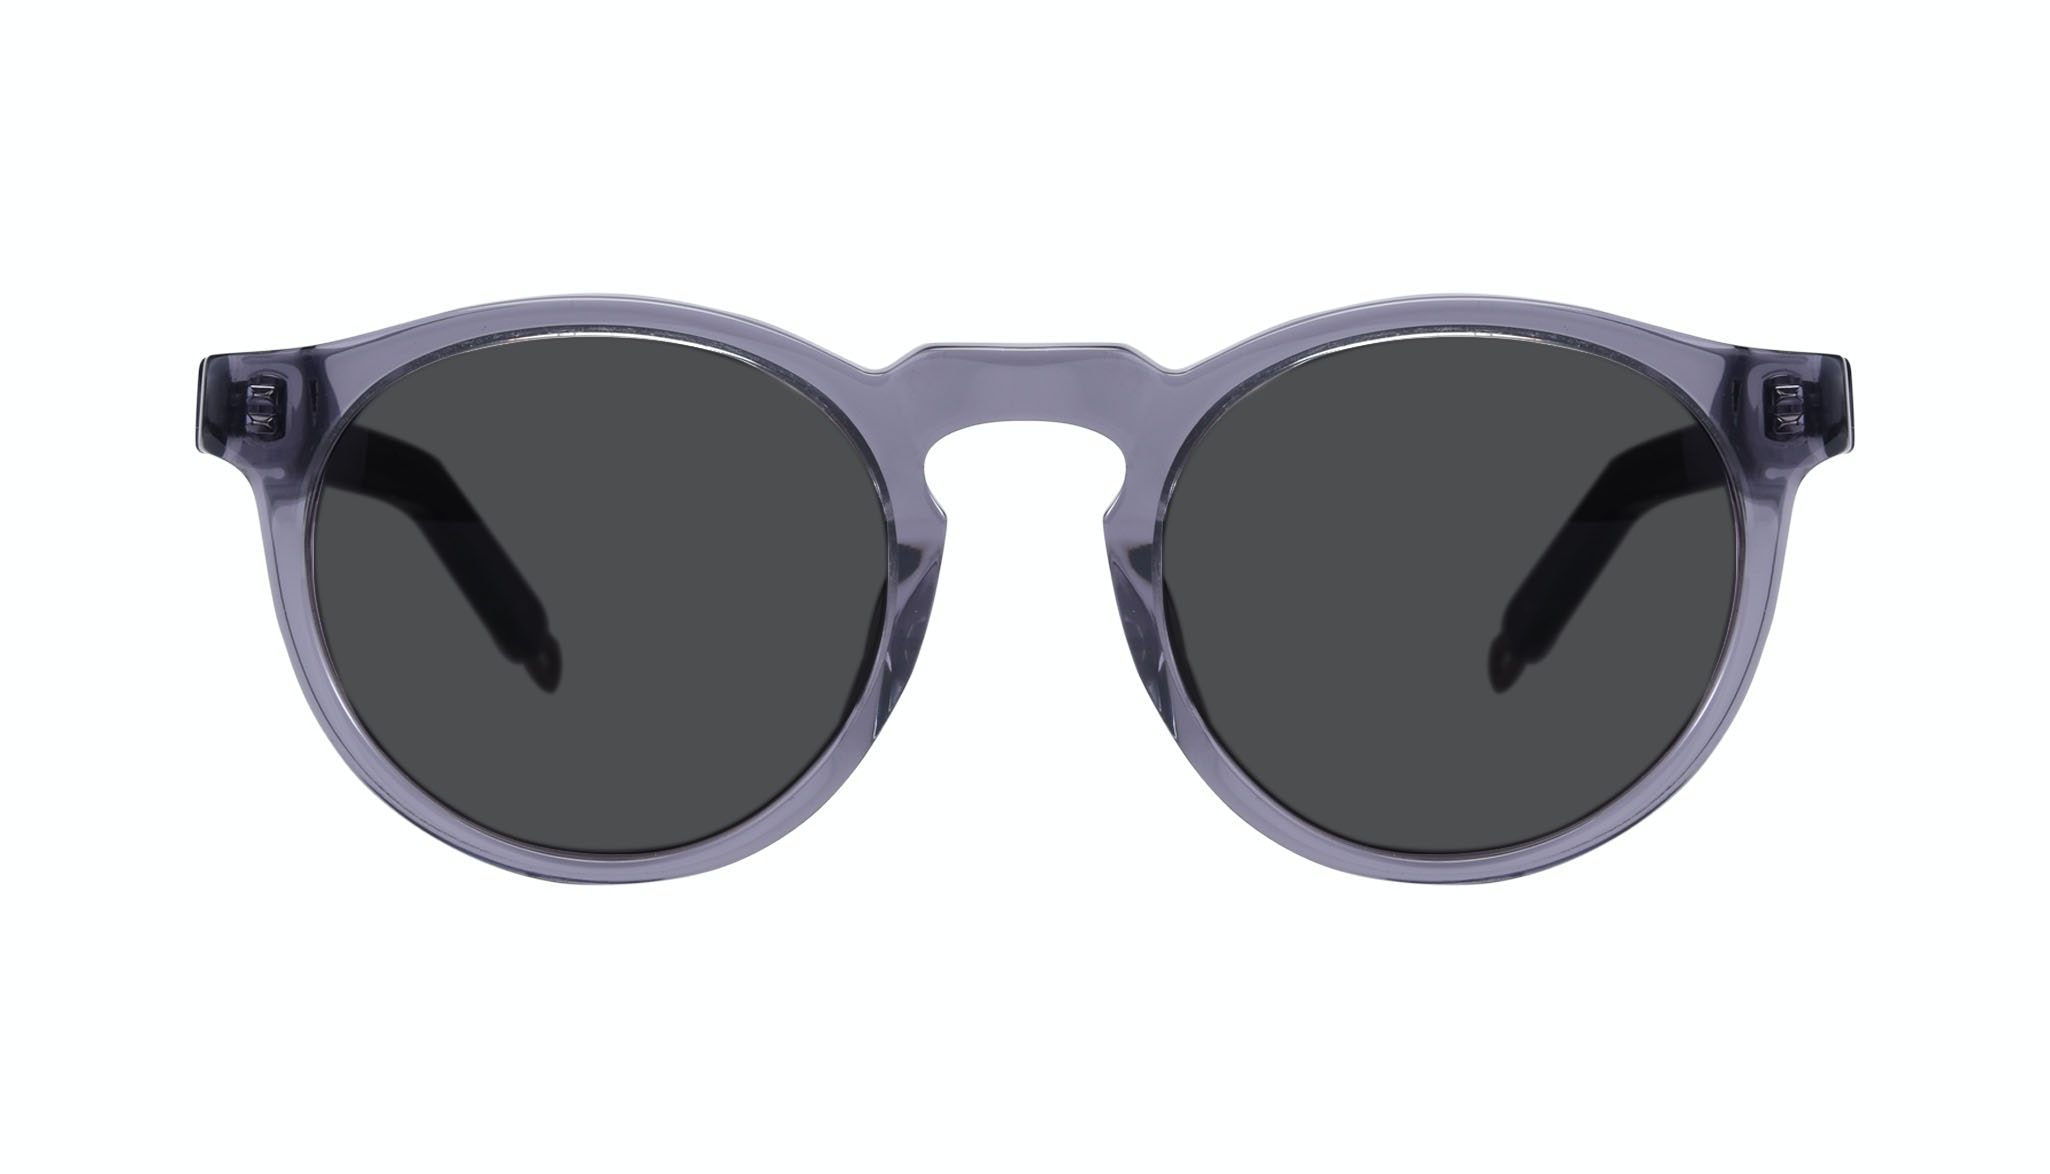 Affordable Fashion Glasses Round Sunglasses Men Ace Shadow